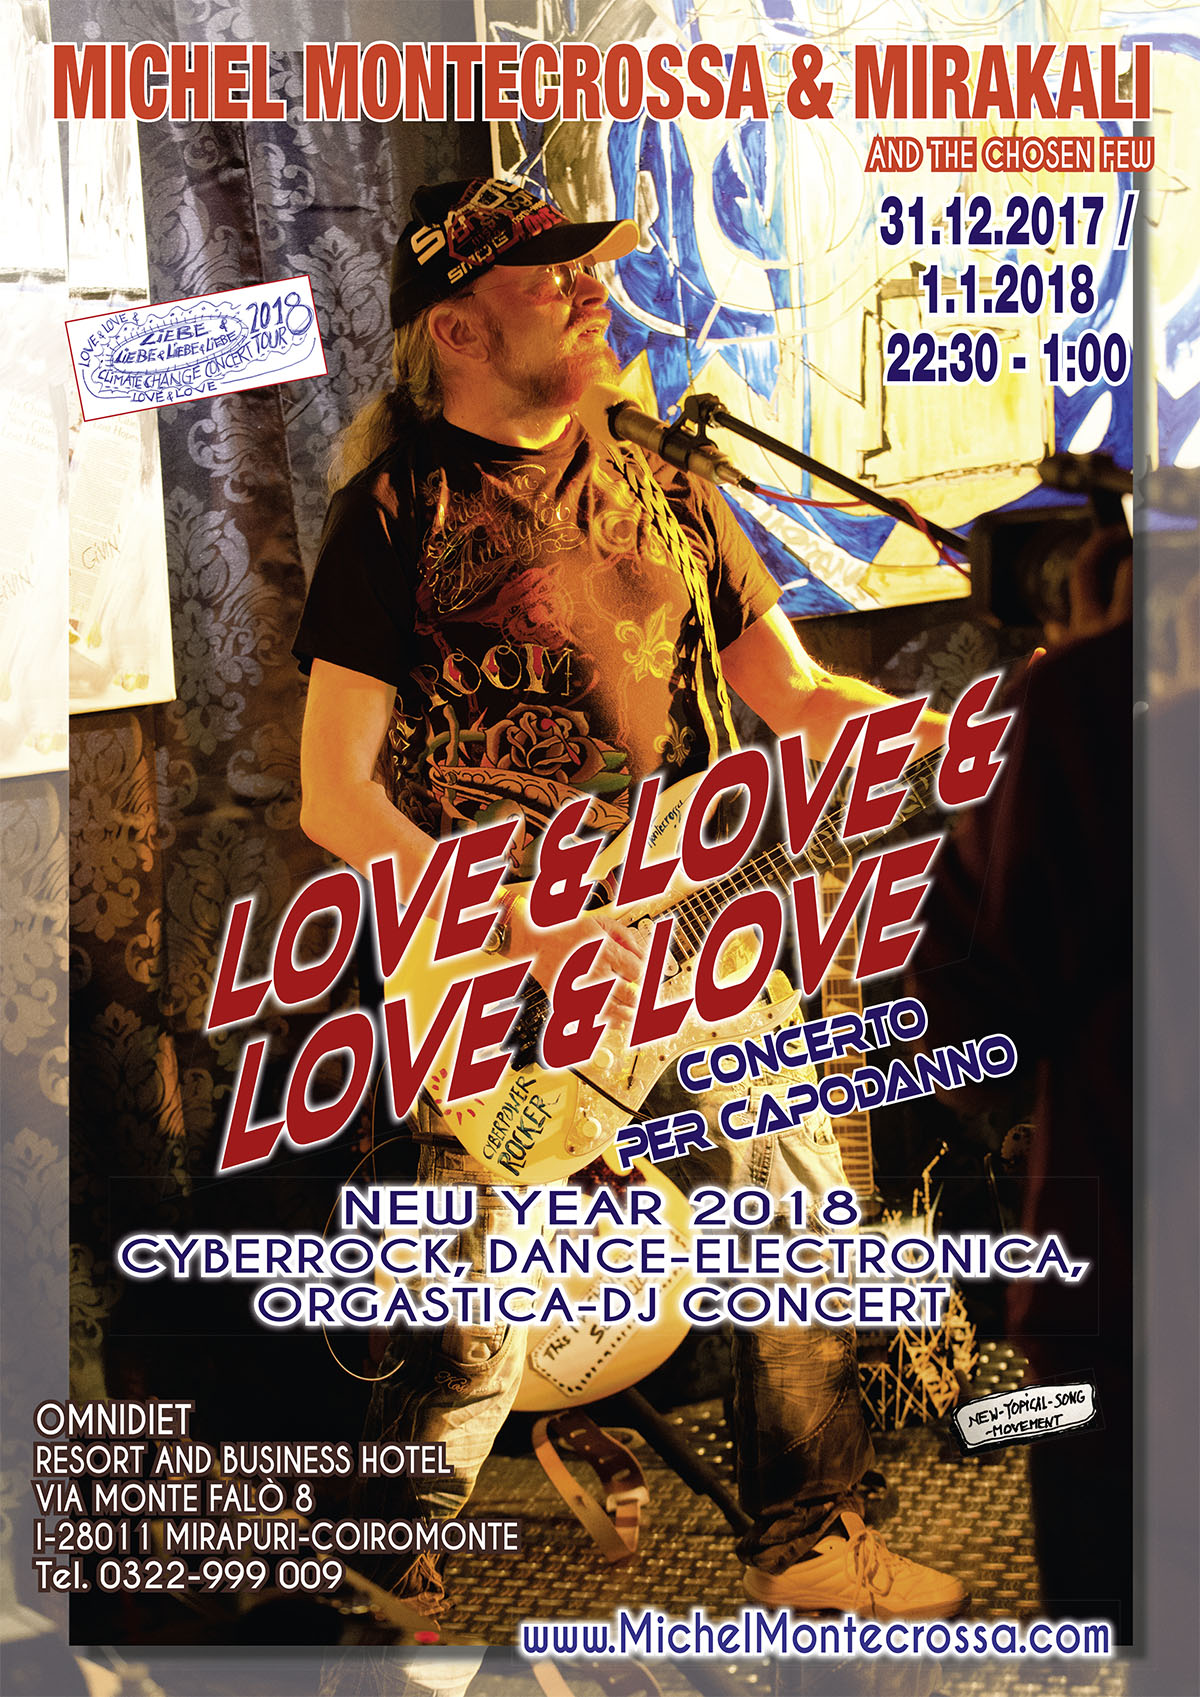 Love & Love & Love & Love New Year Concert